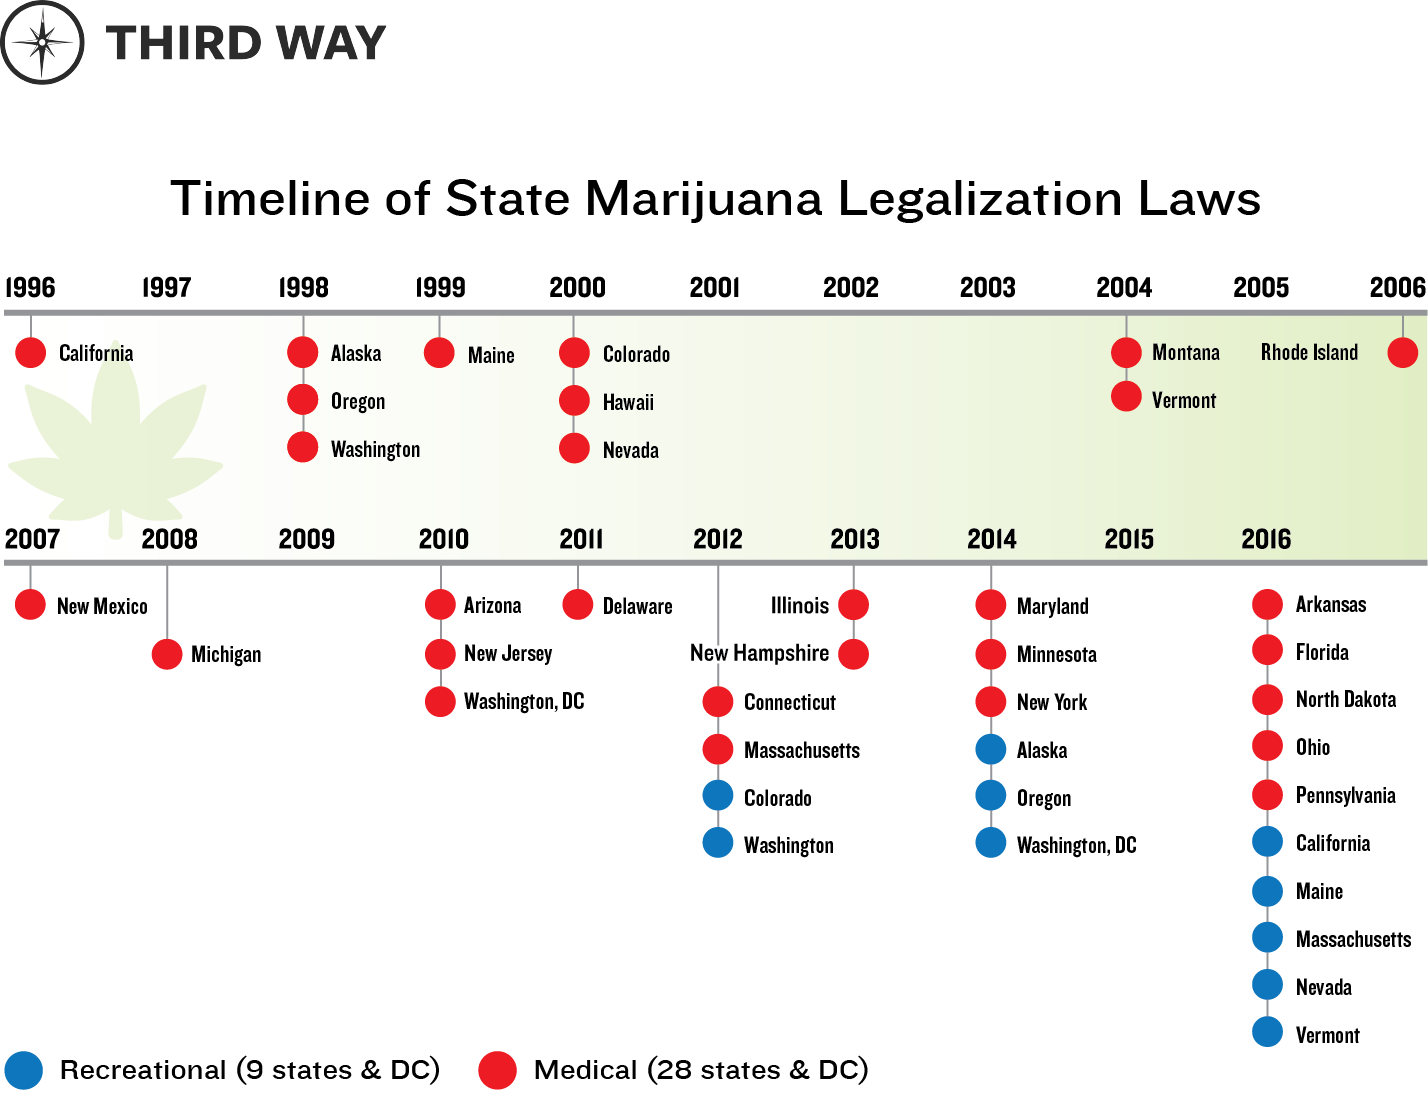 timeline of state marijuana legalization laws third way